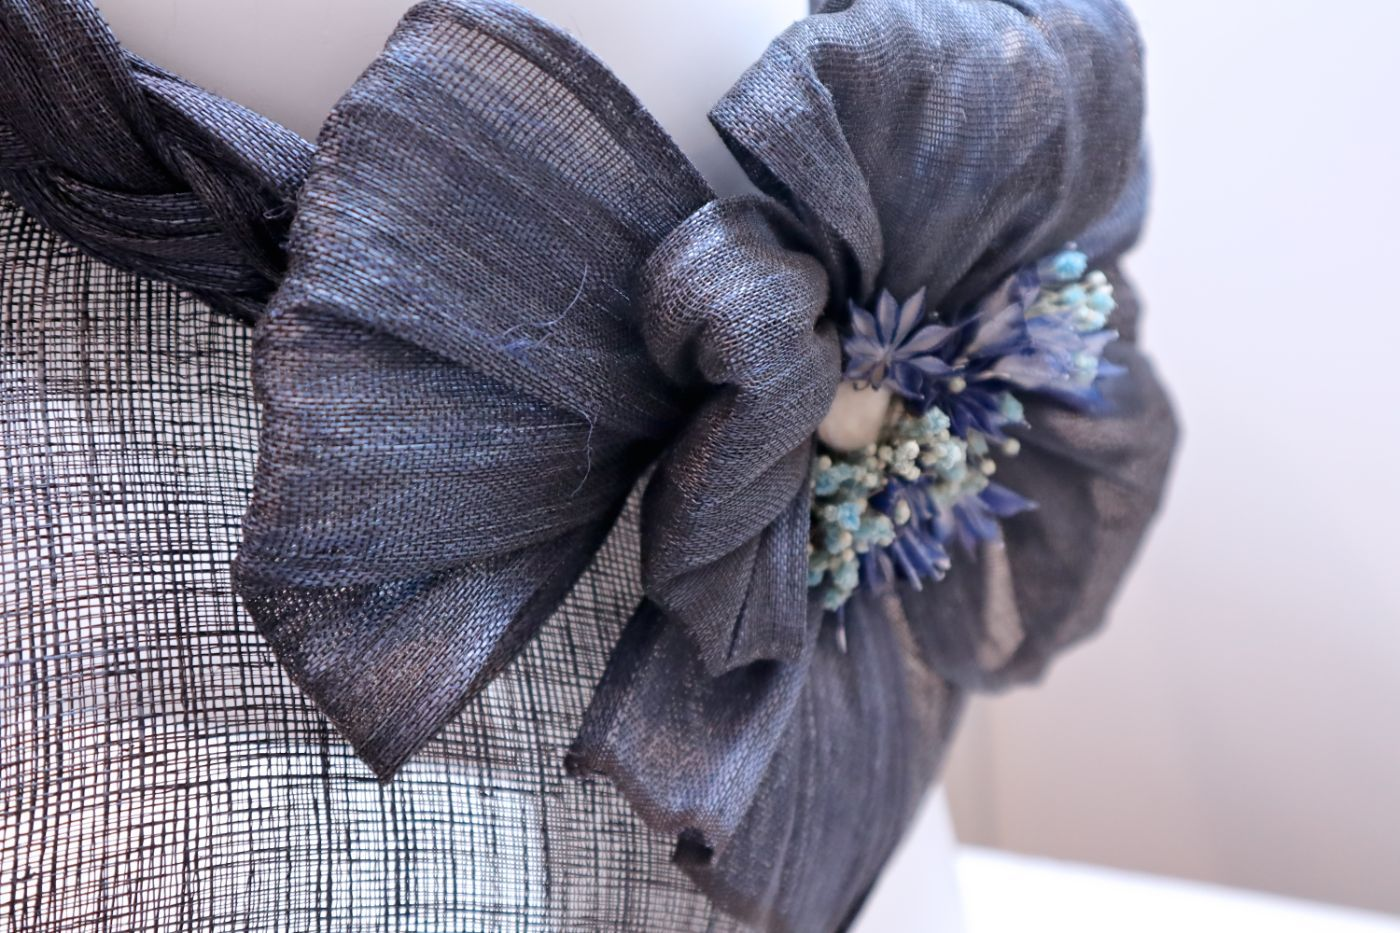 Fascinator, sinamay hat, open dome, braided crown with bow and flowers Navy